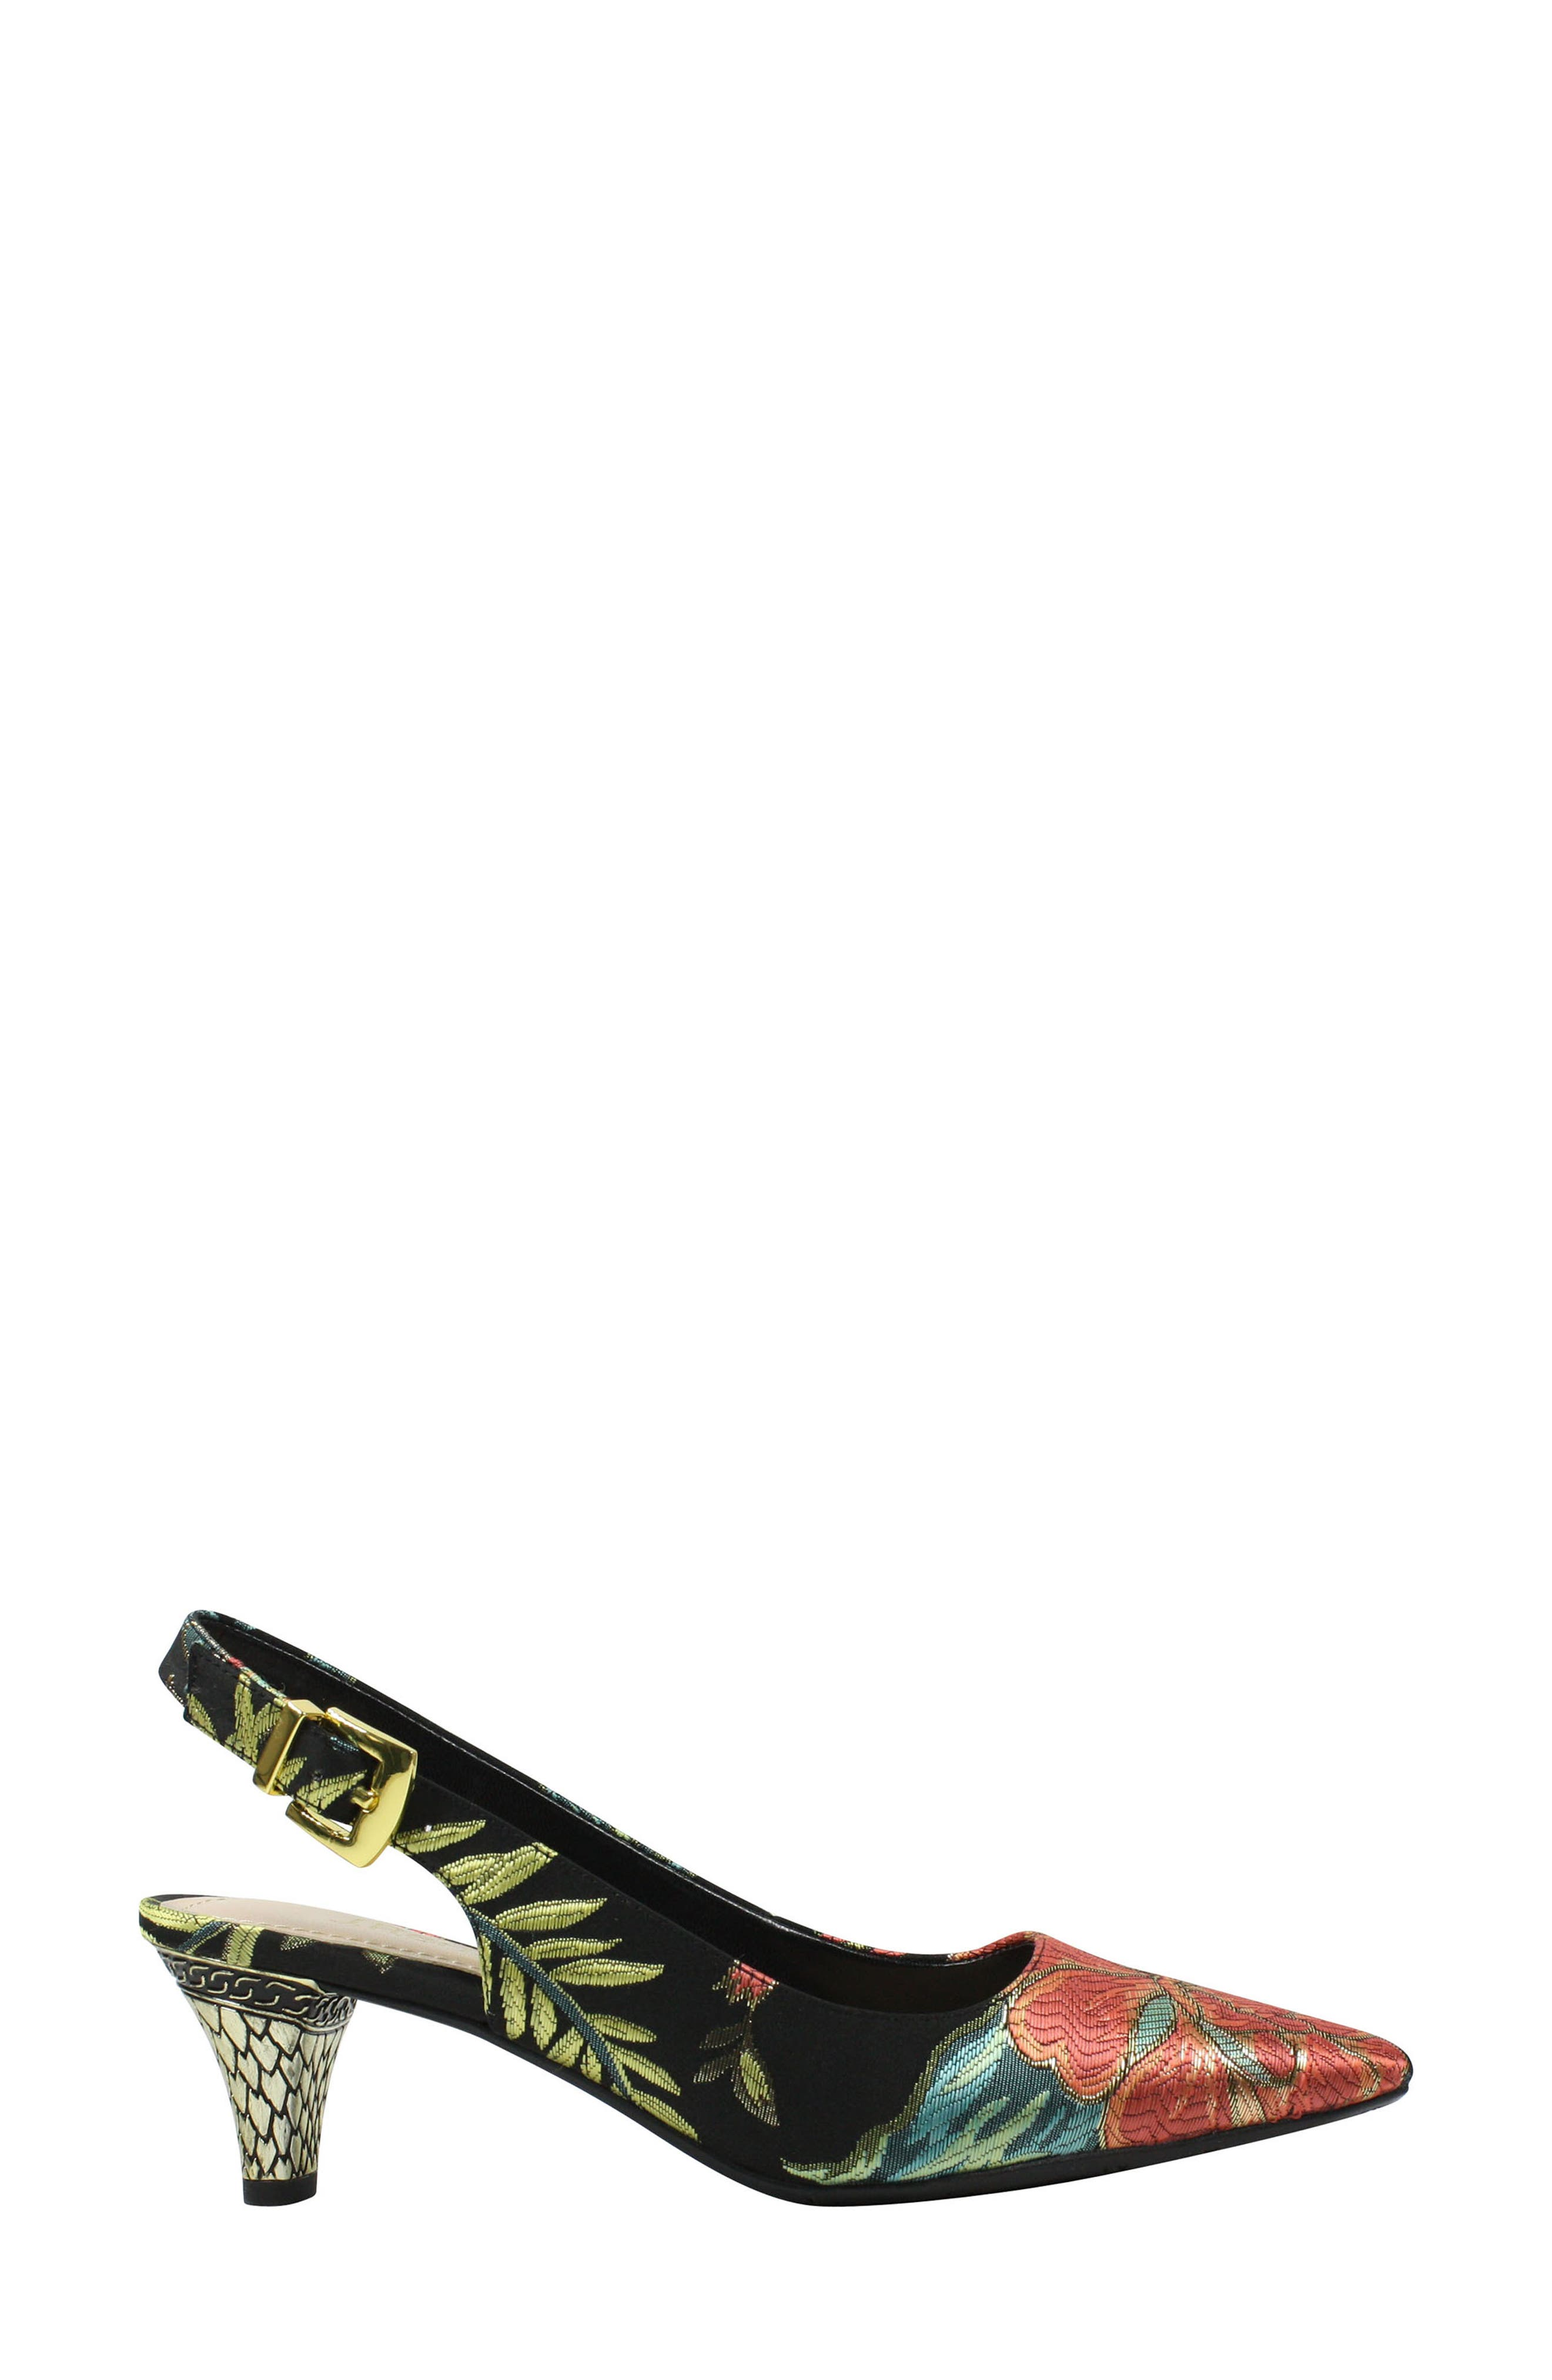 Mayetta Slingback Pump,                             Alternate thumbnail 3, color,                             Black/ Teal/ Coral Multi